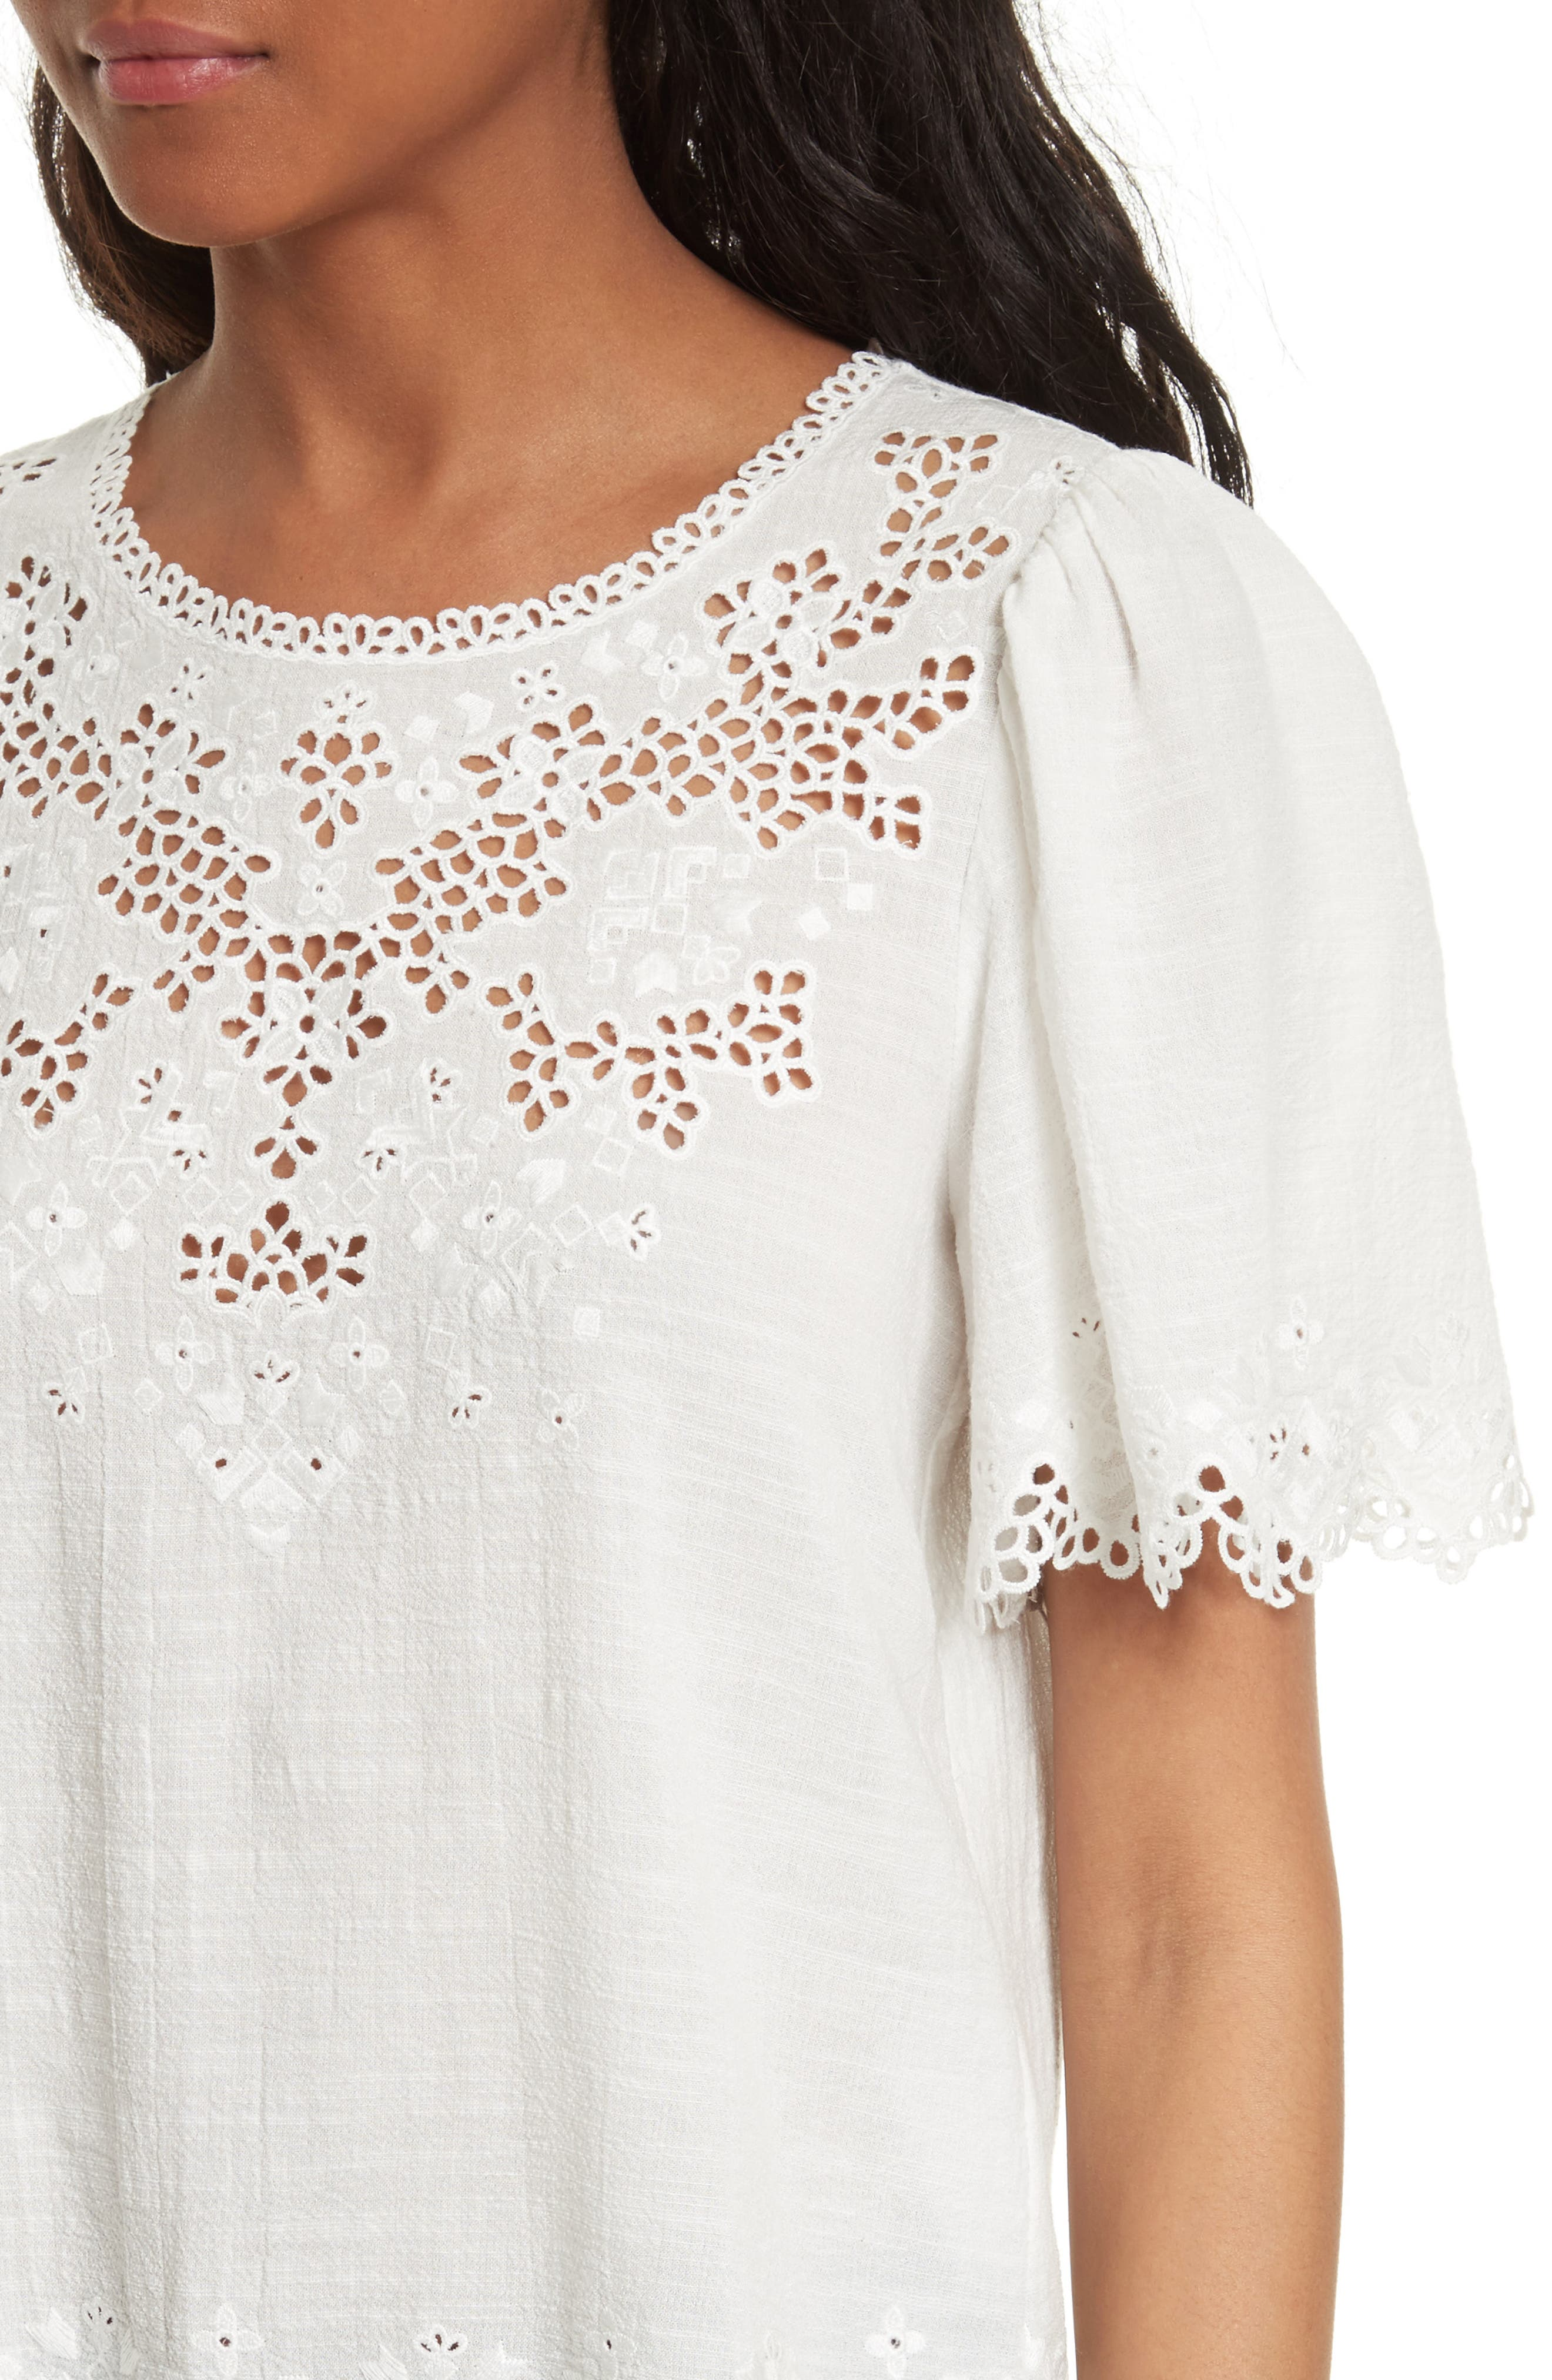 Amore Embroidered Top,                             Alternate thumbnail 4, color,                             Milk